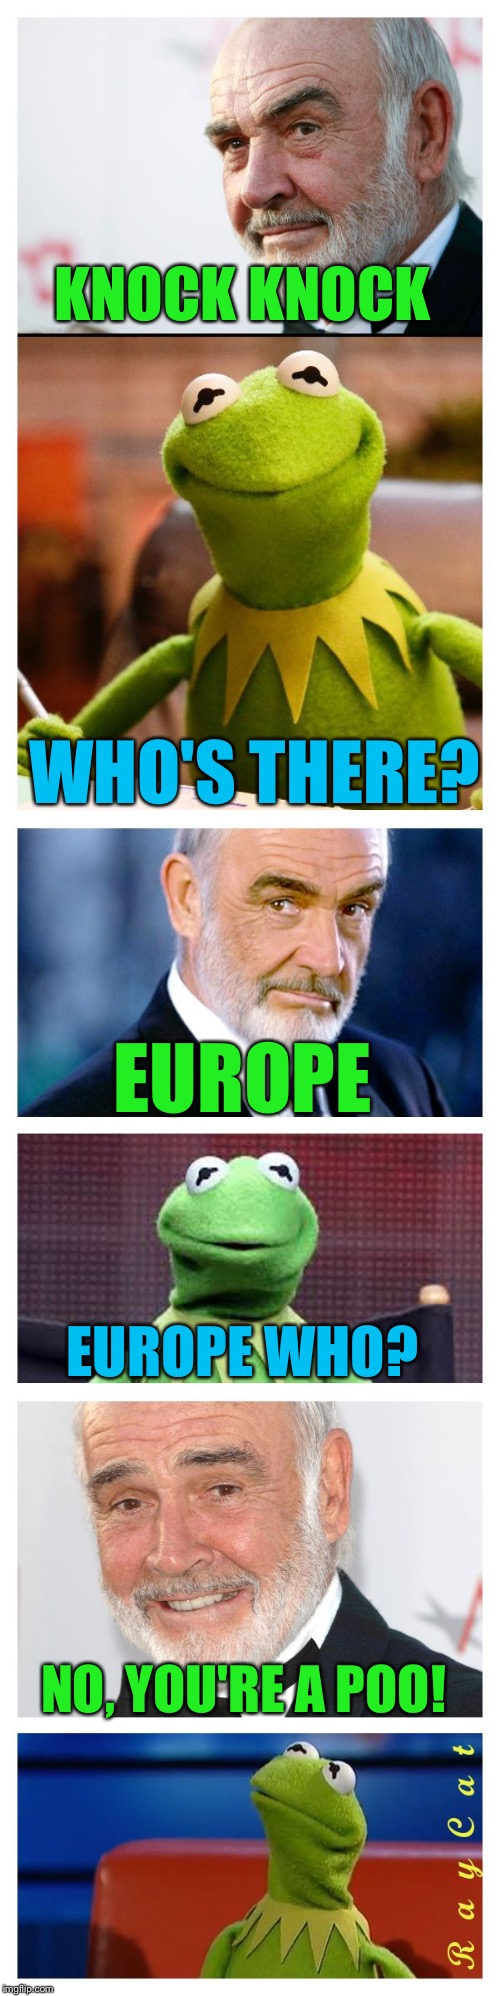 Sean and Kermit | KNOCK KNOCK WHO'S THERE? EUROPE EUROPE WHO? NO, YOU'RE A POO! | image tagged in sean and kermit,memes | made w/ Imgflip meme maker